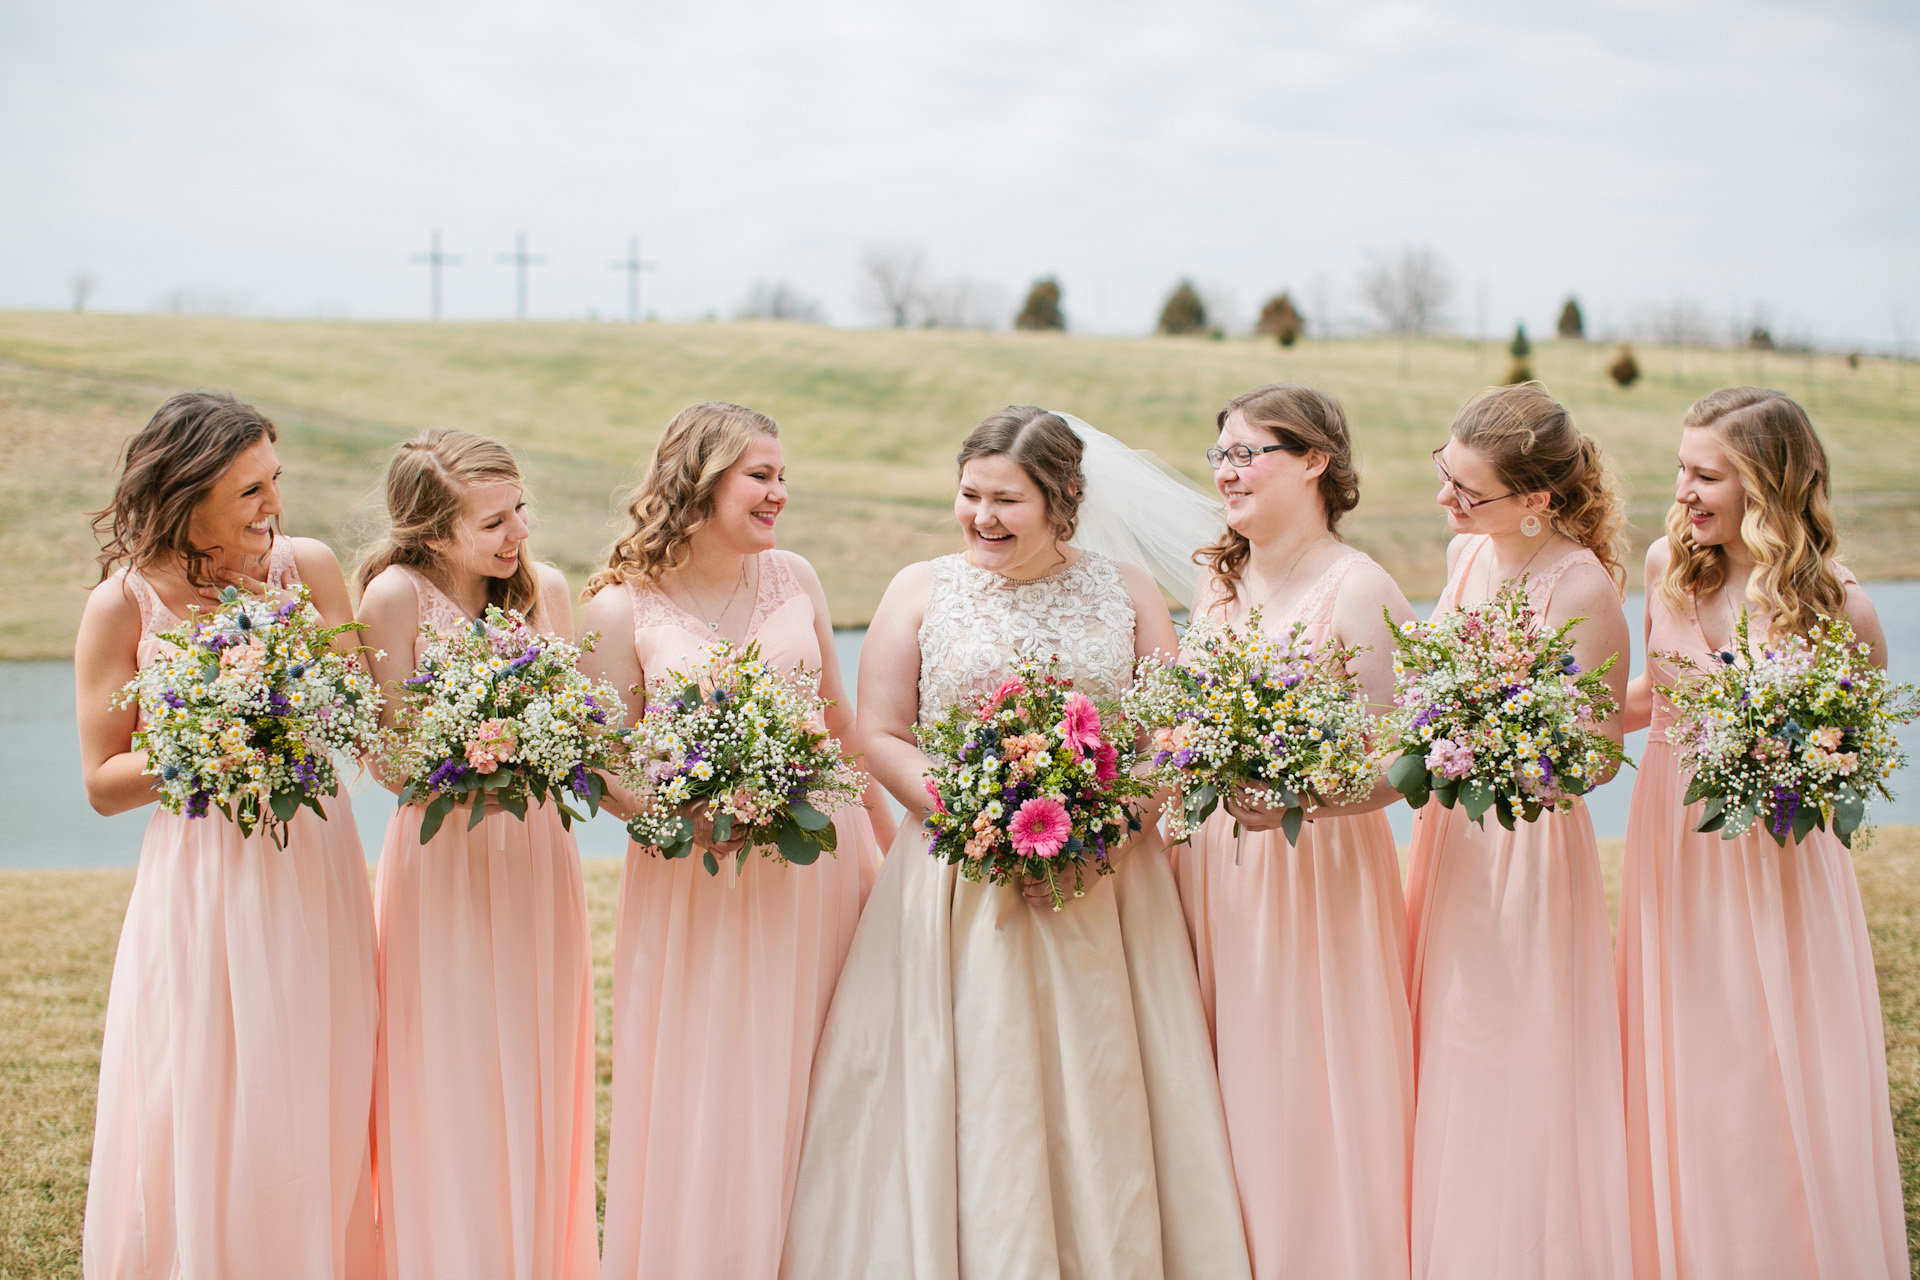 wedding with 6 bridesmaids and 6 groomsment